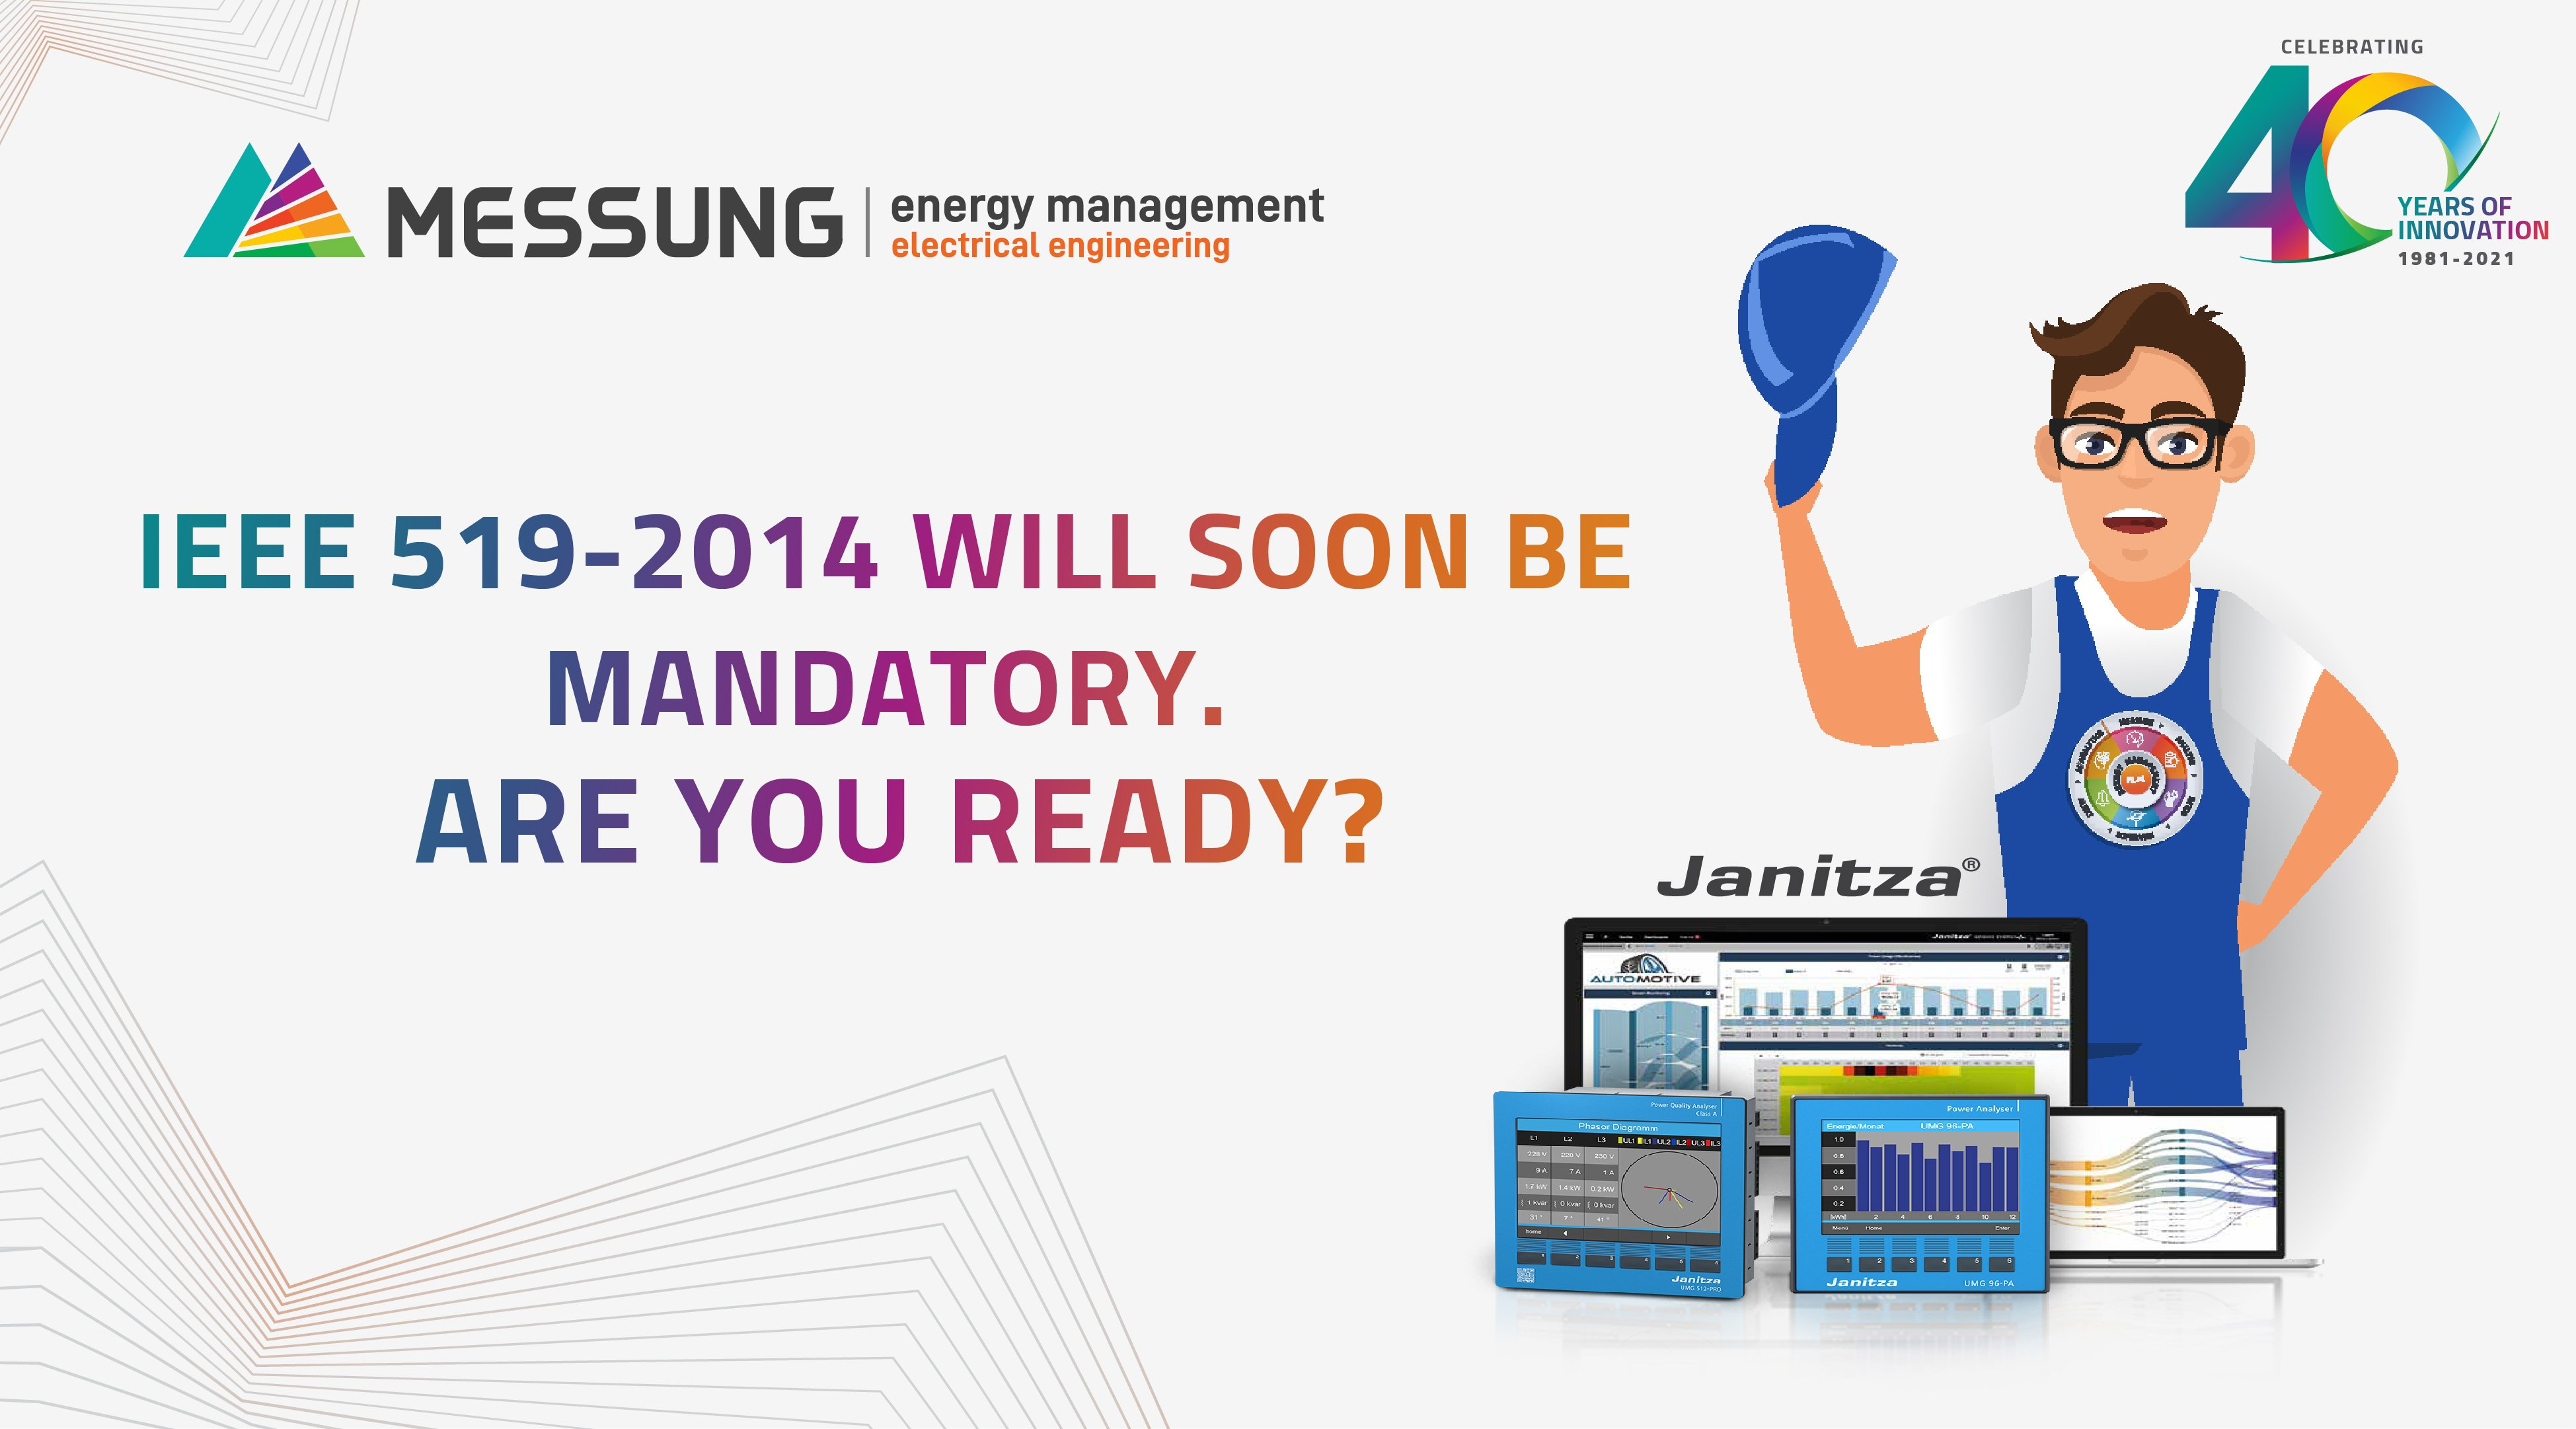 IEEE 519-2014 WILL SOON BE MANDATORY.ARE YOU READY?